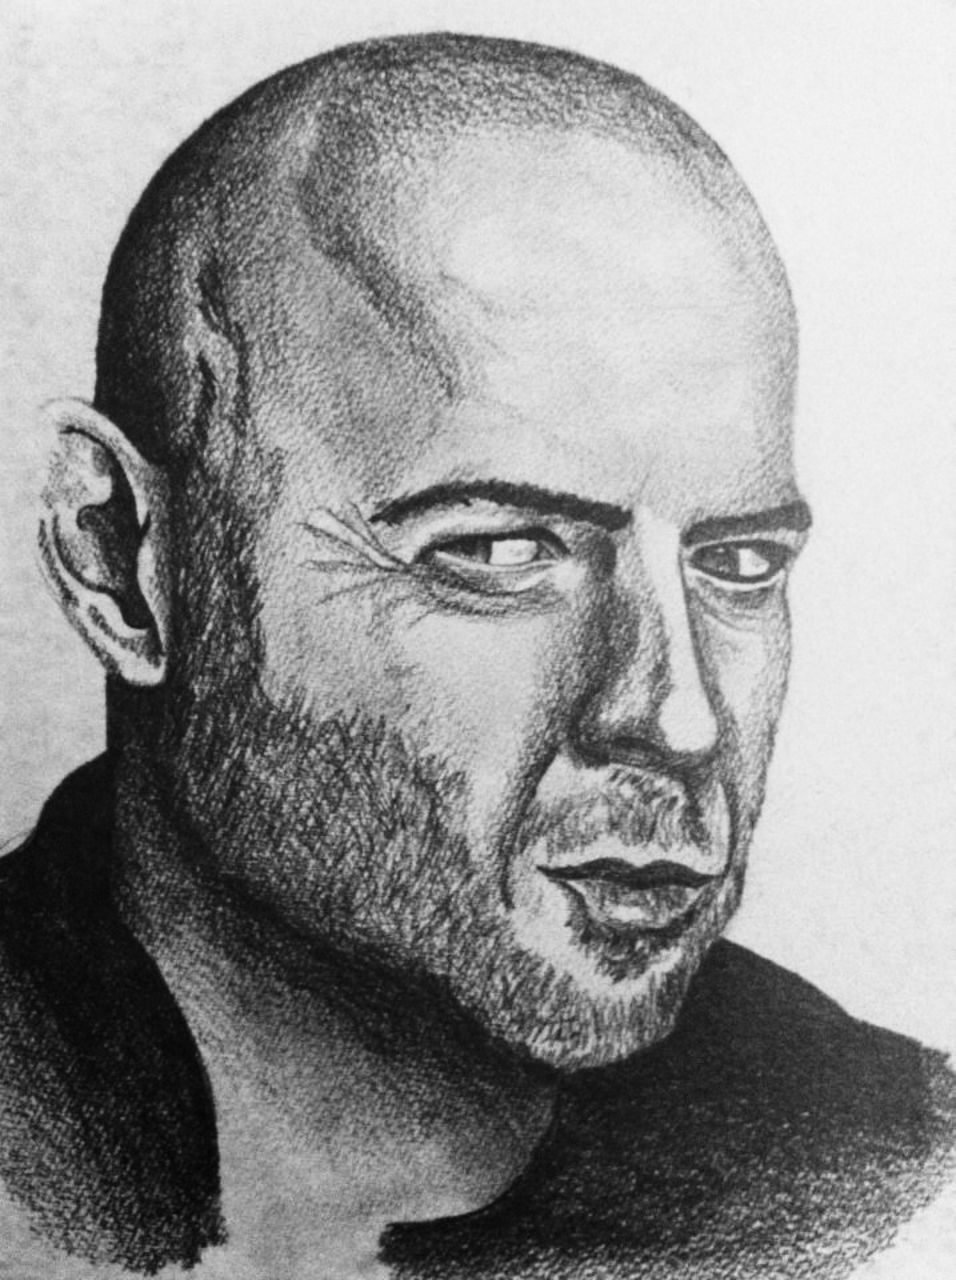 Crombois portrait Bruce Willis